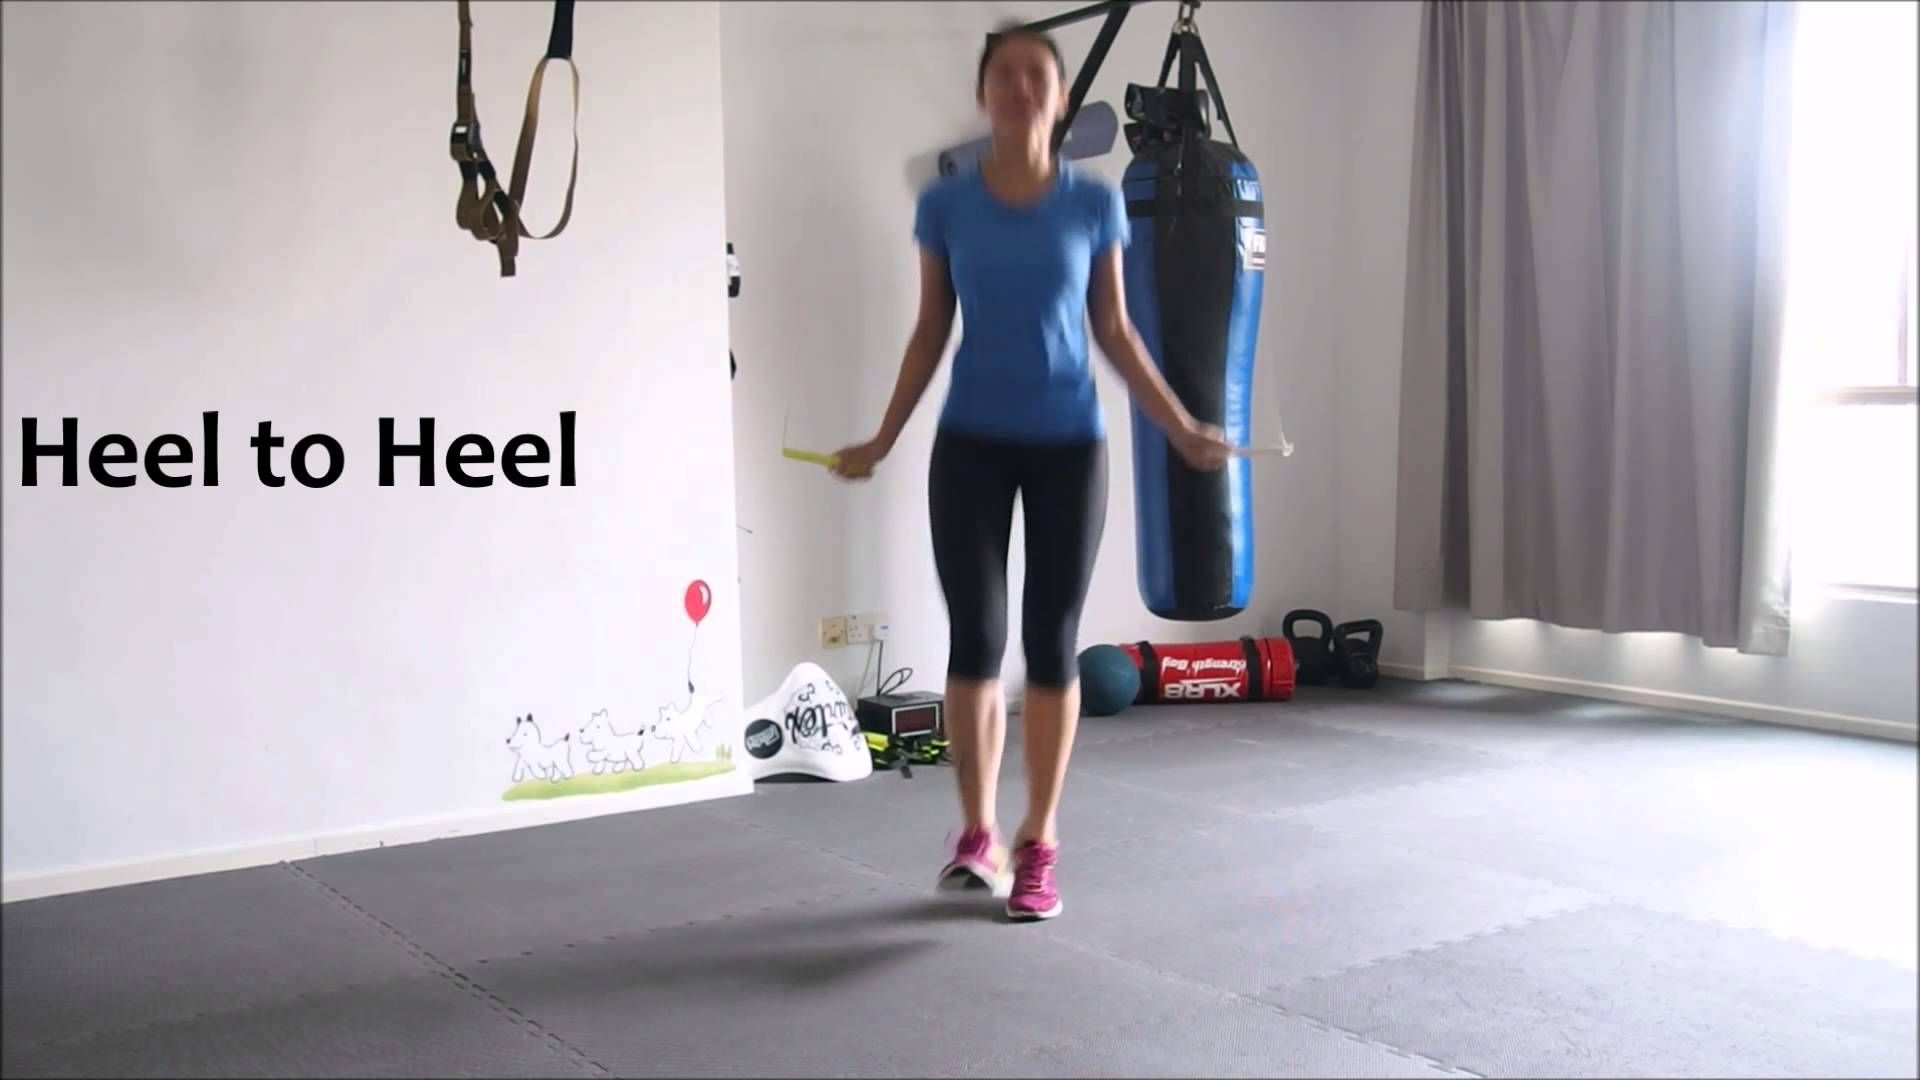 Youtube Jump Rope Workout Jump Rope Skipping Rope